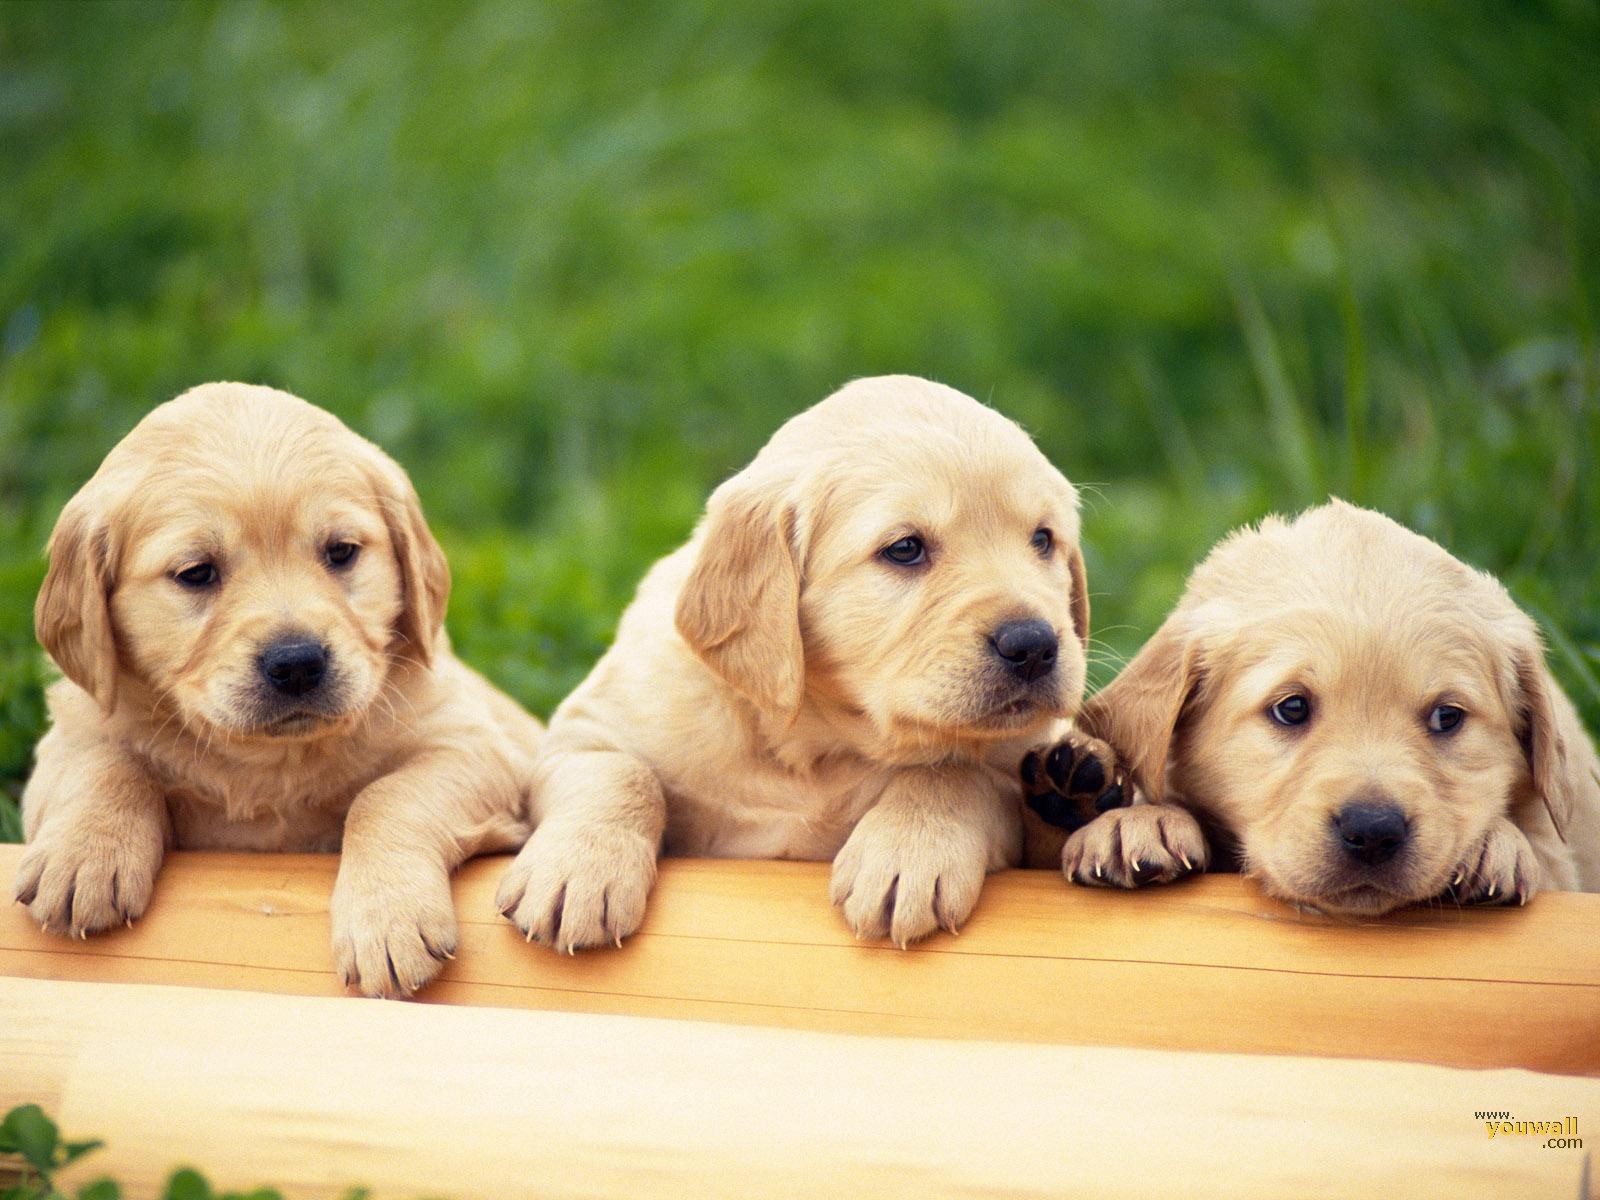 Cute Dogs Wallpaper 1600x1200 58313